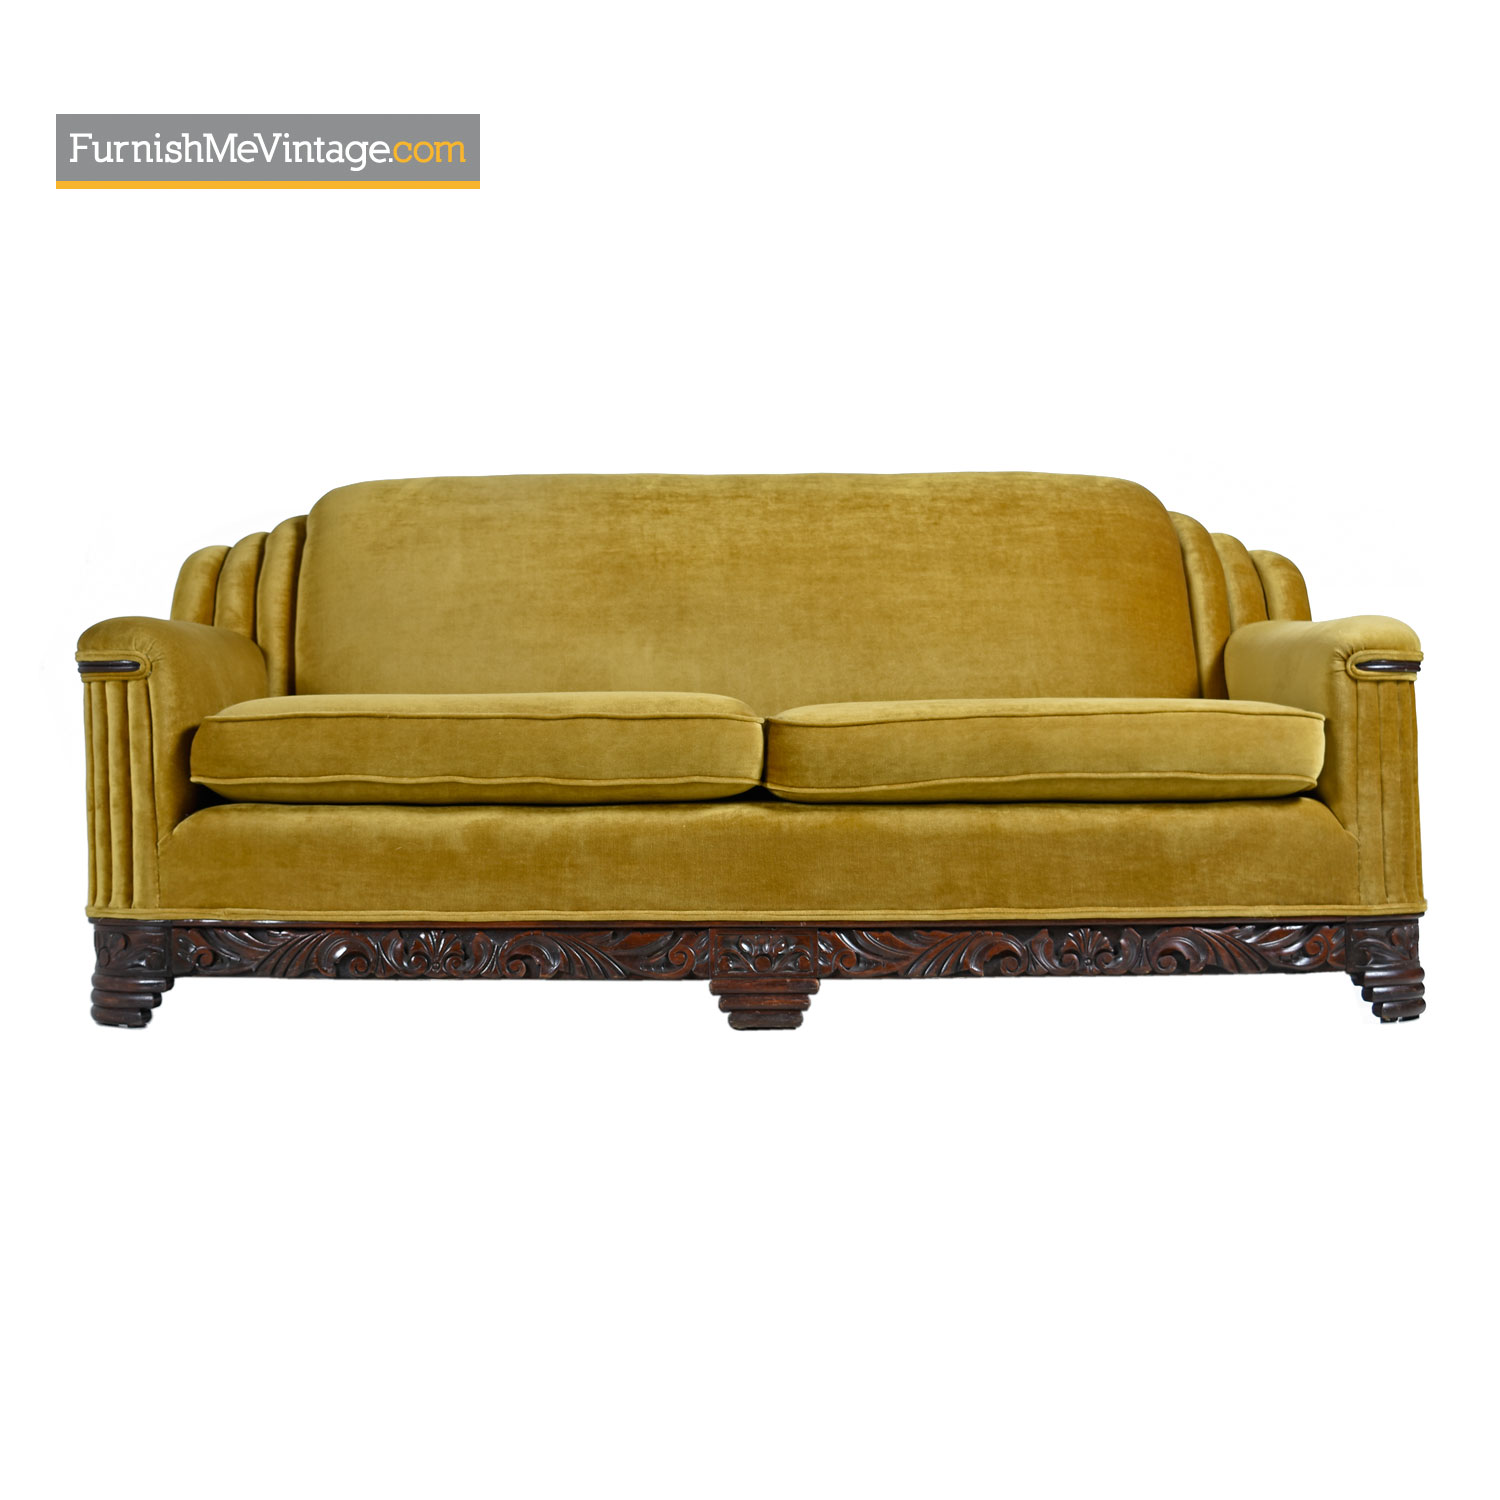 Astonishing Art Deco Mahogany Accent Bronze Gold Chartreuse Mohair Sofa Couch Lamtechconsult Wood Chair Design Ideas Lamtechconsultcom